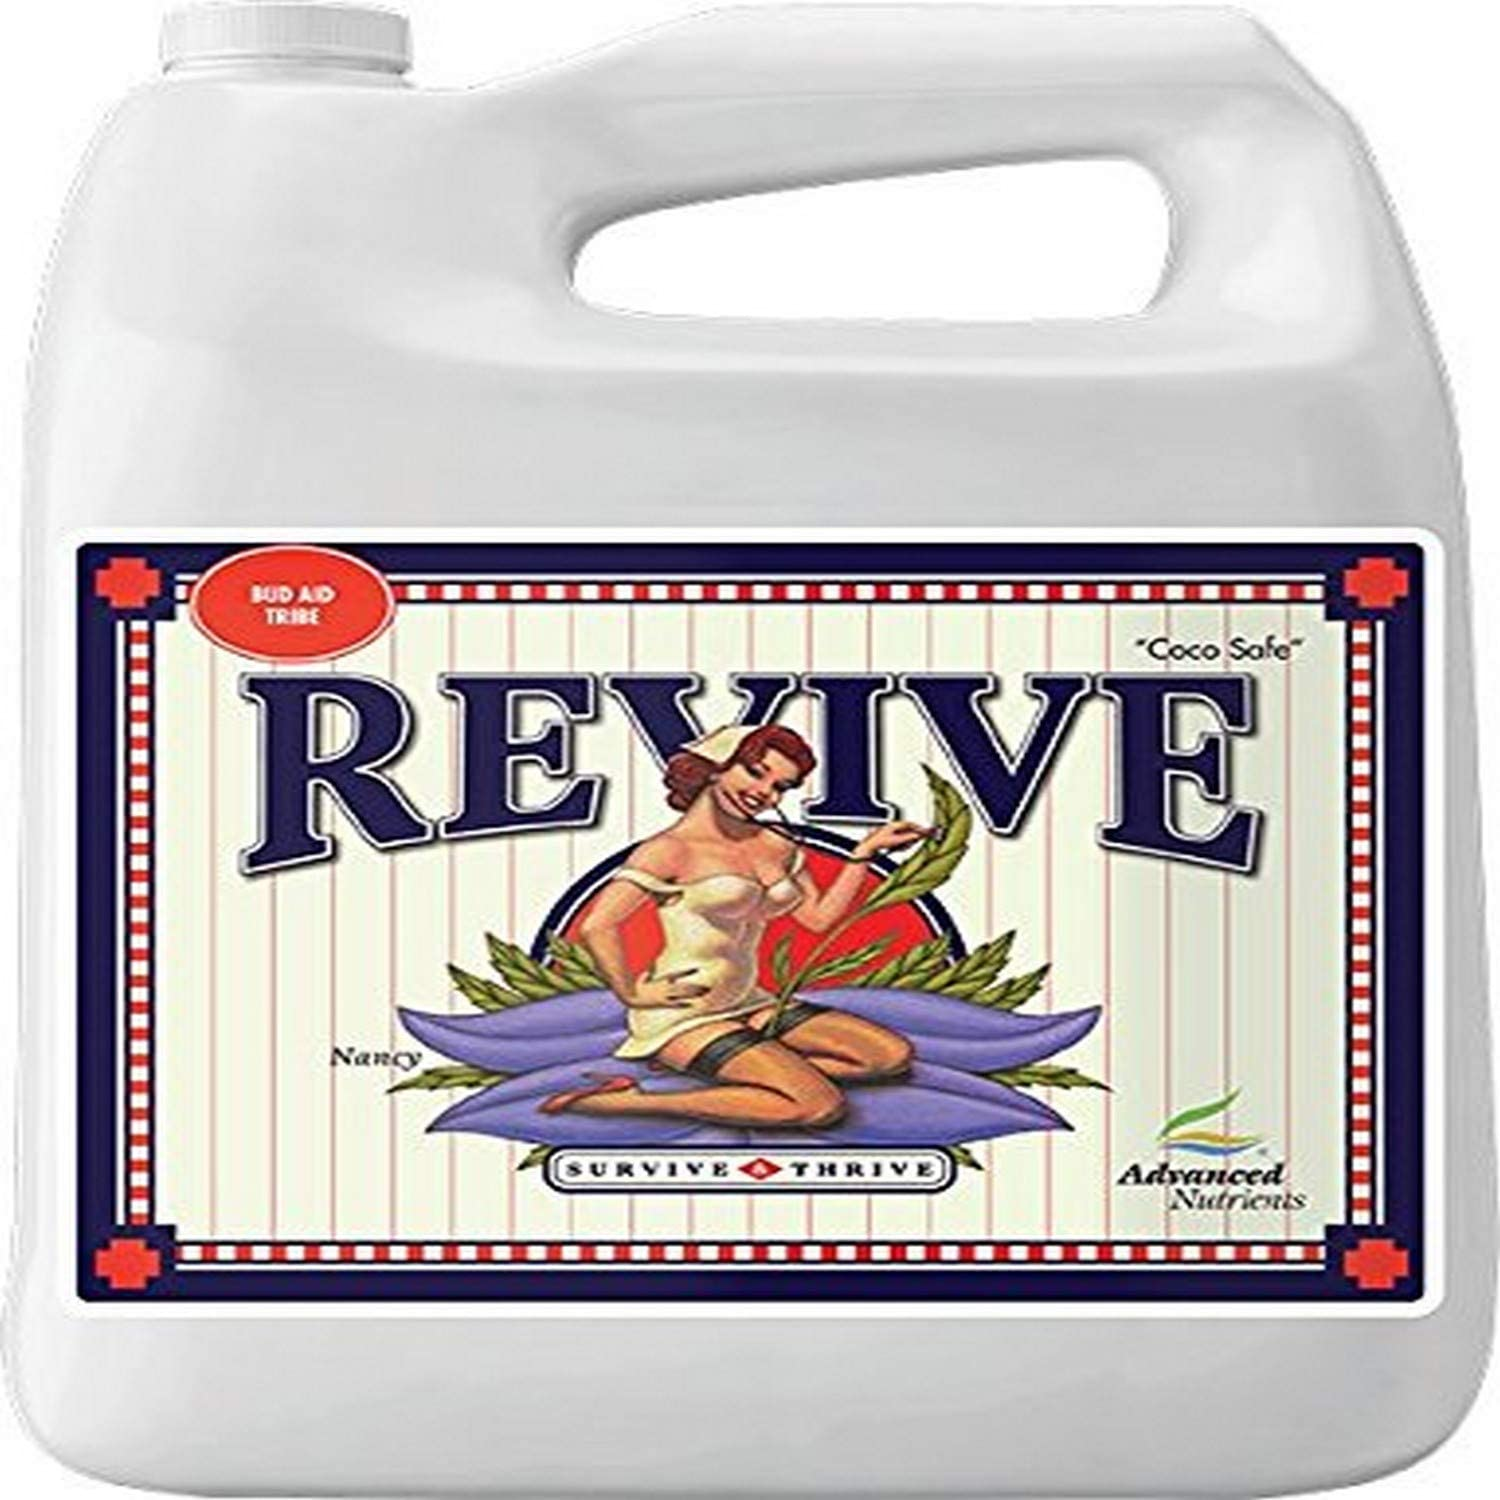 Advanced Nutrients 3950-15 Revive Fertilizer 4 Liter, Brown/A